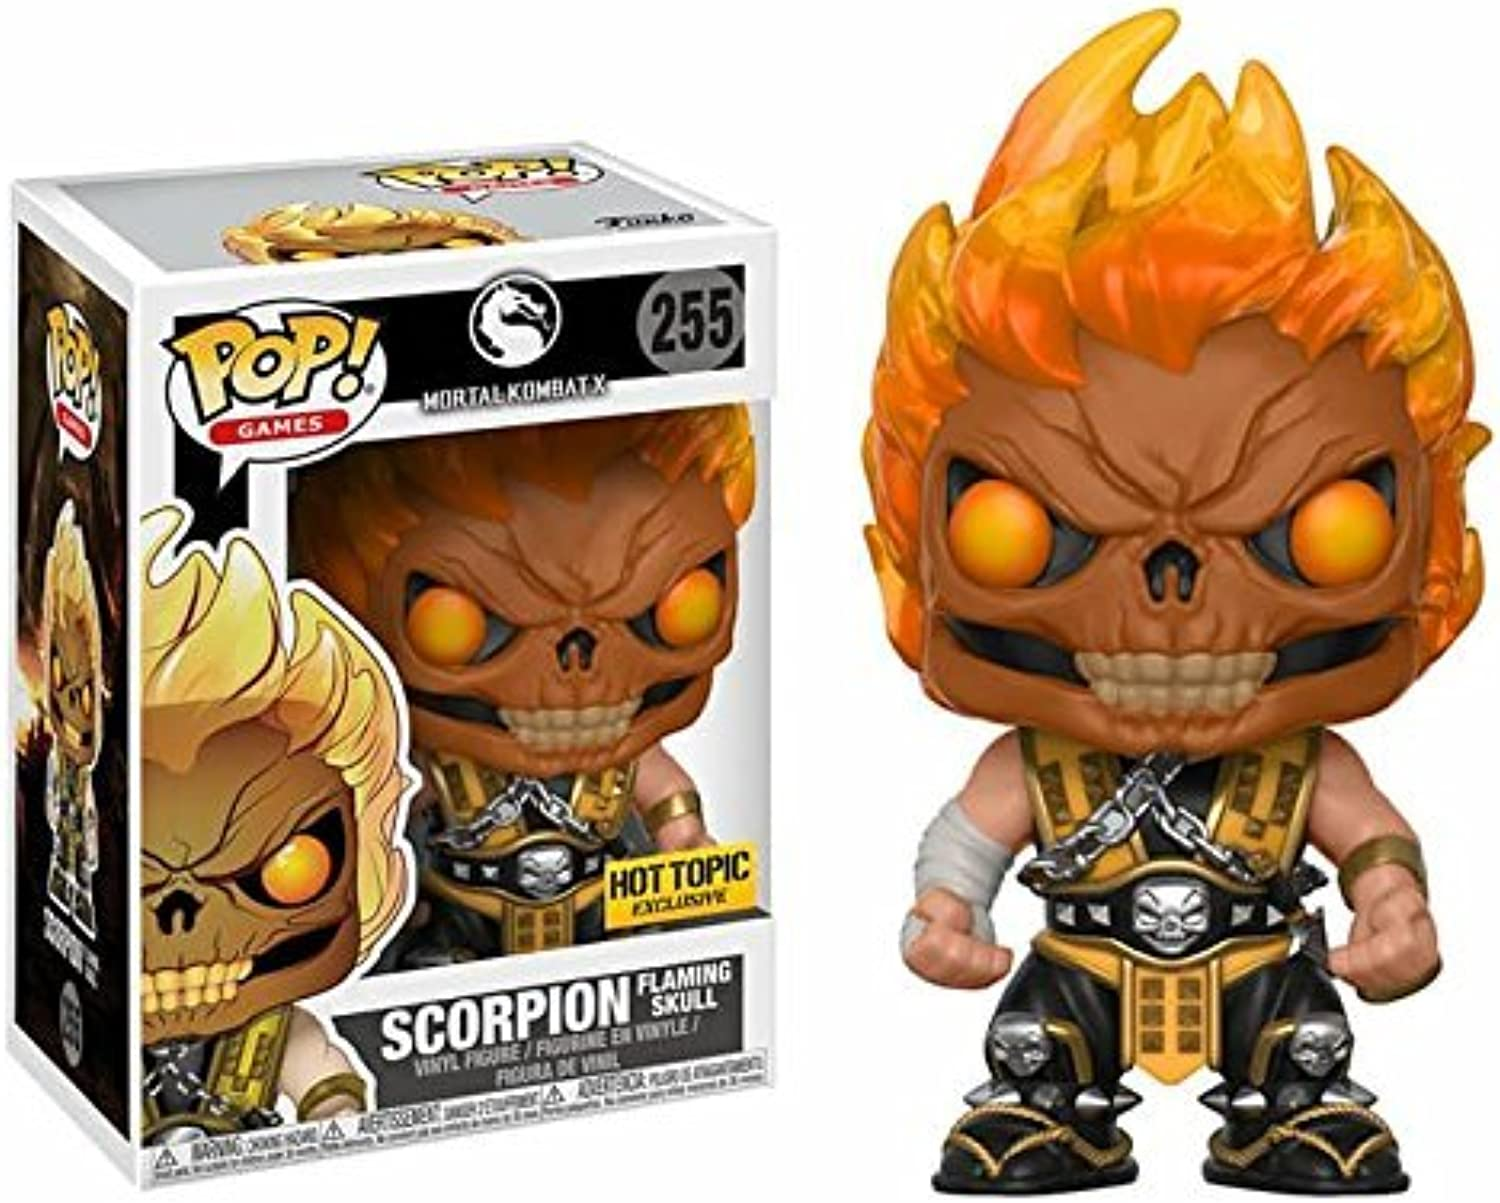 Mortal Kombat X  Scorpion (Flaming Skull) Pop  Vinyl Figure